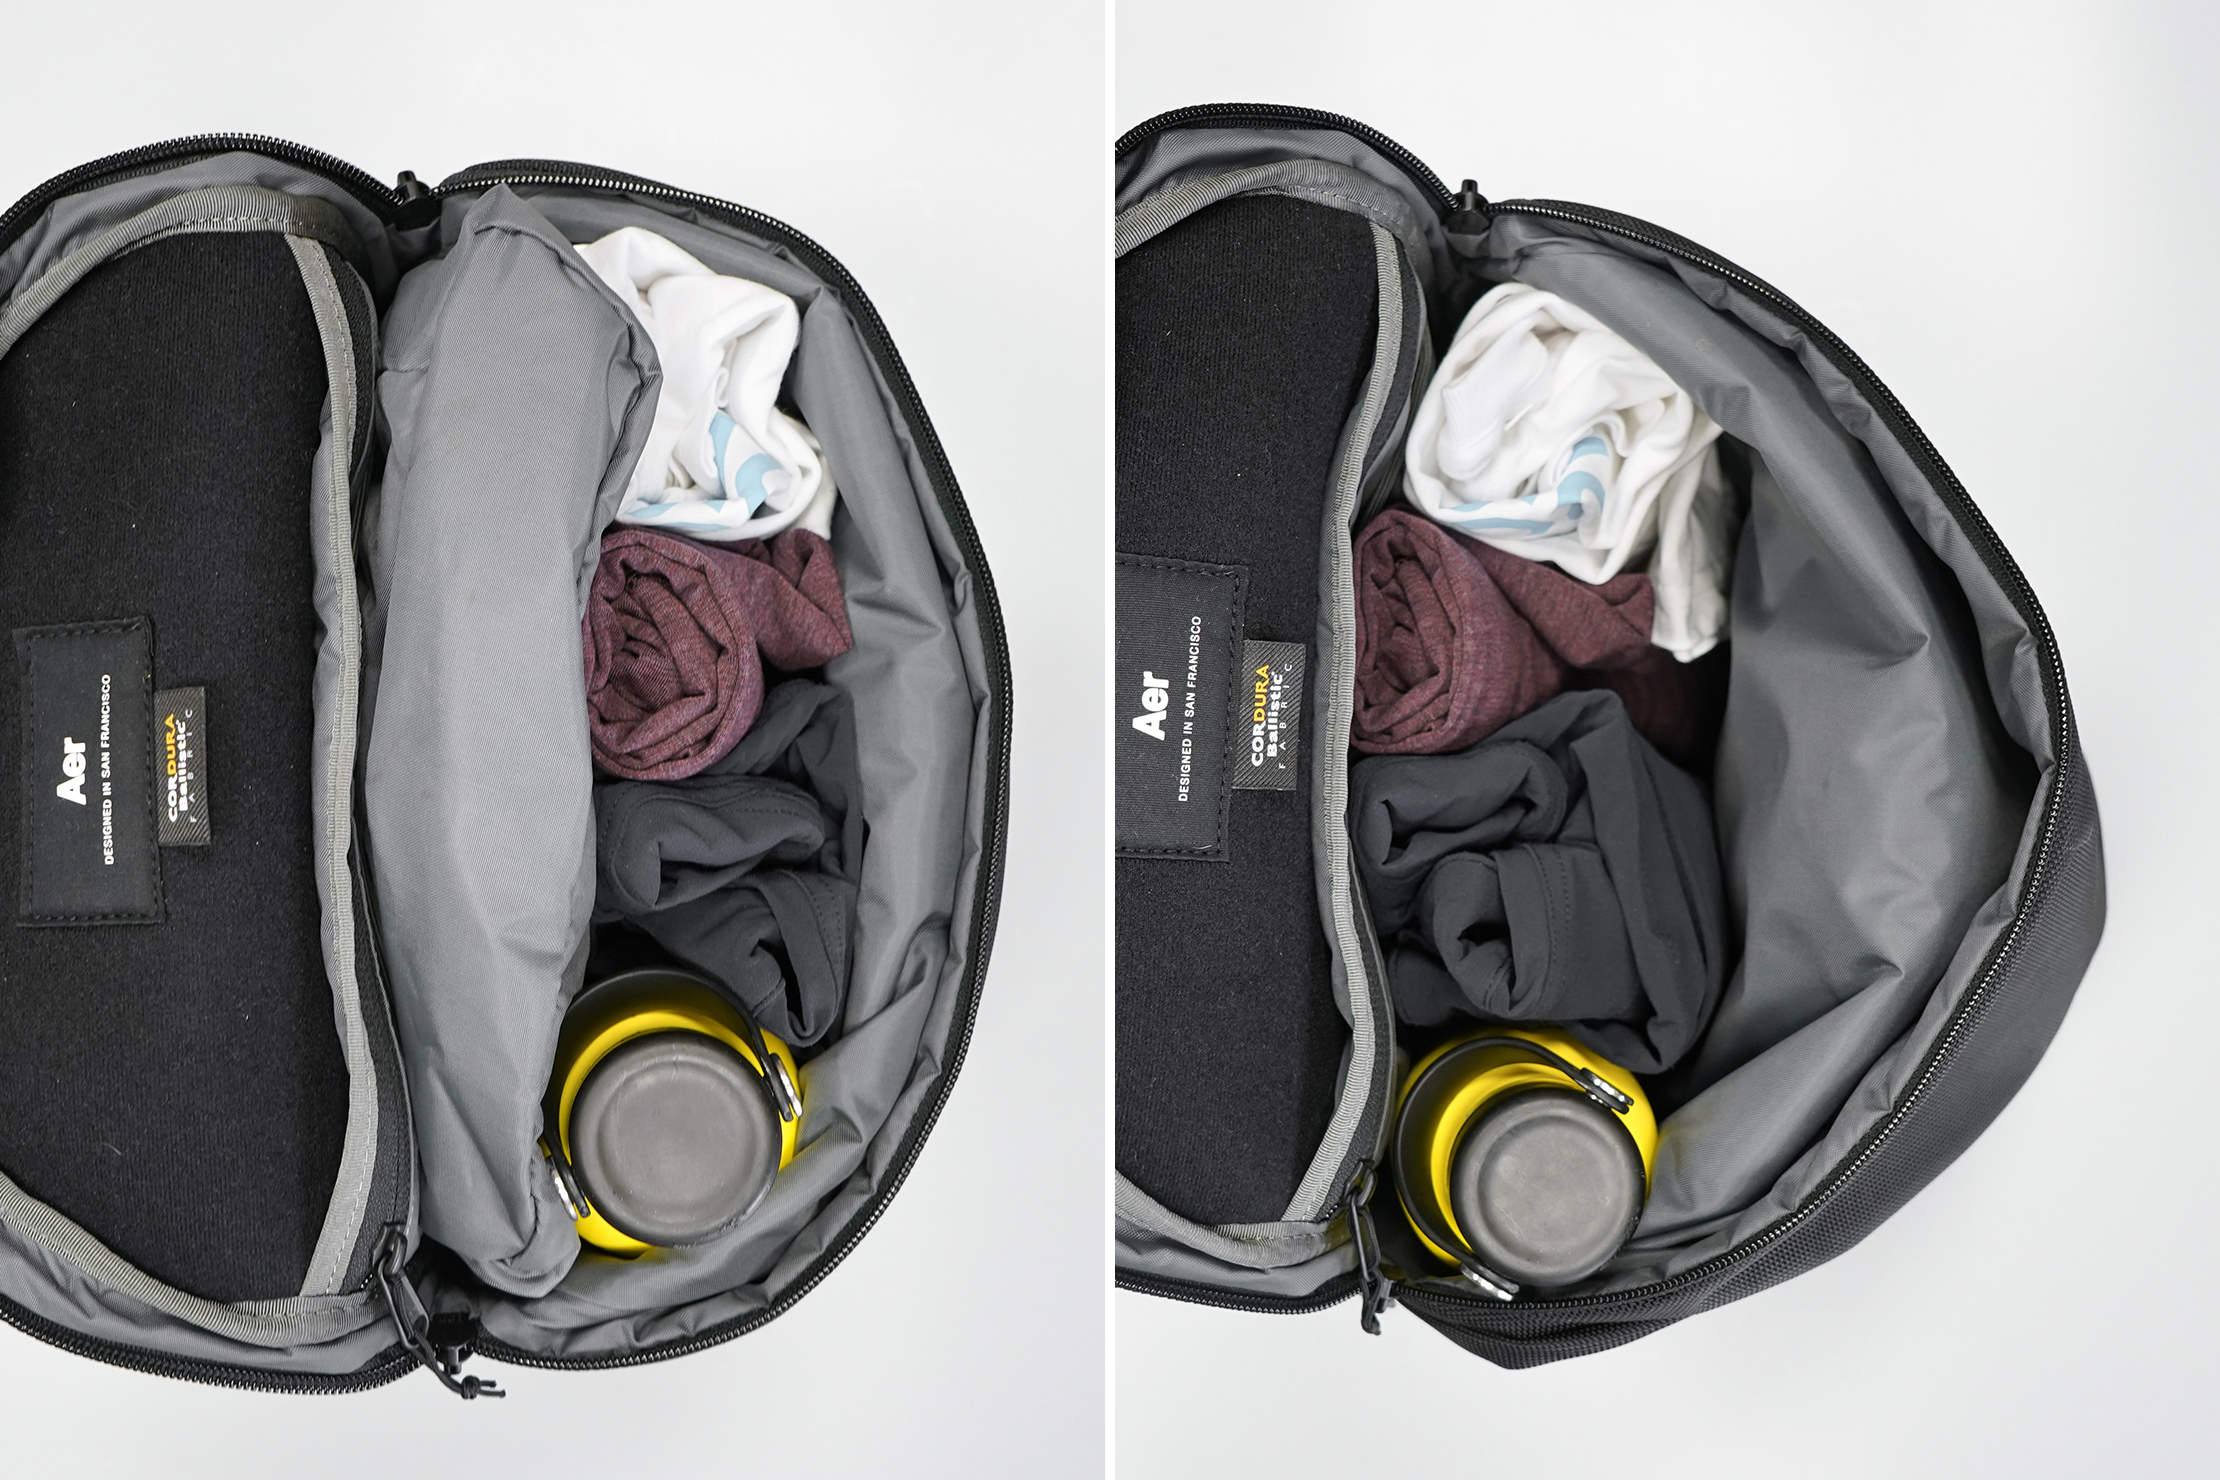 Aer Sling Bag 3 main compartment